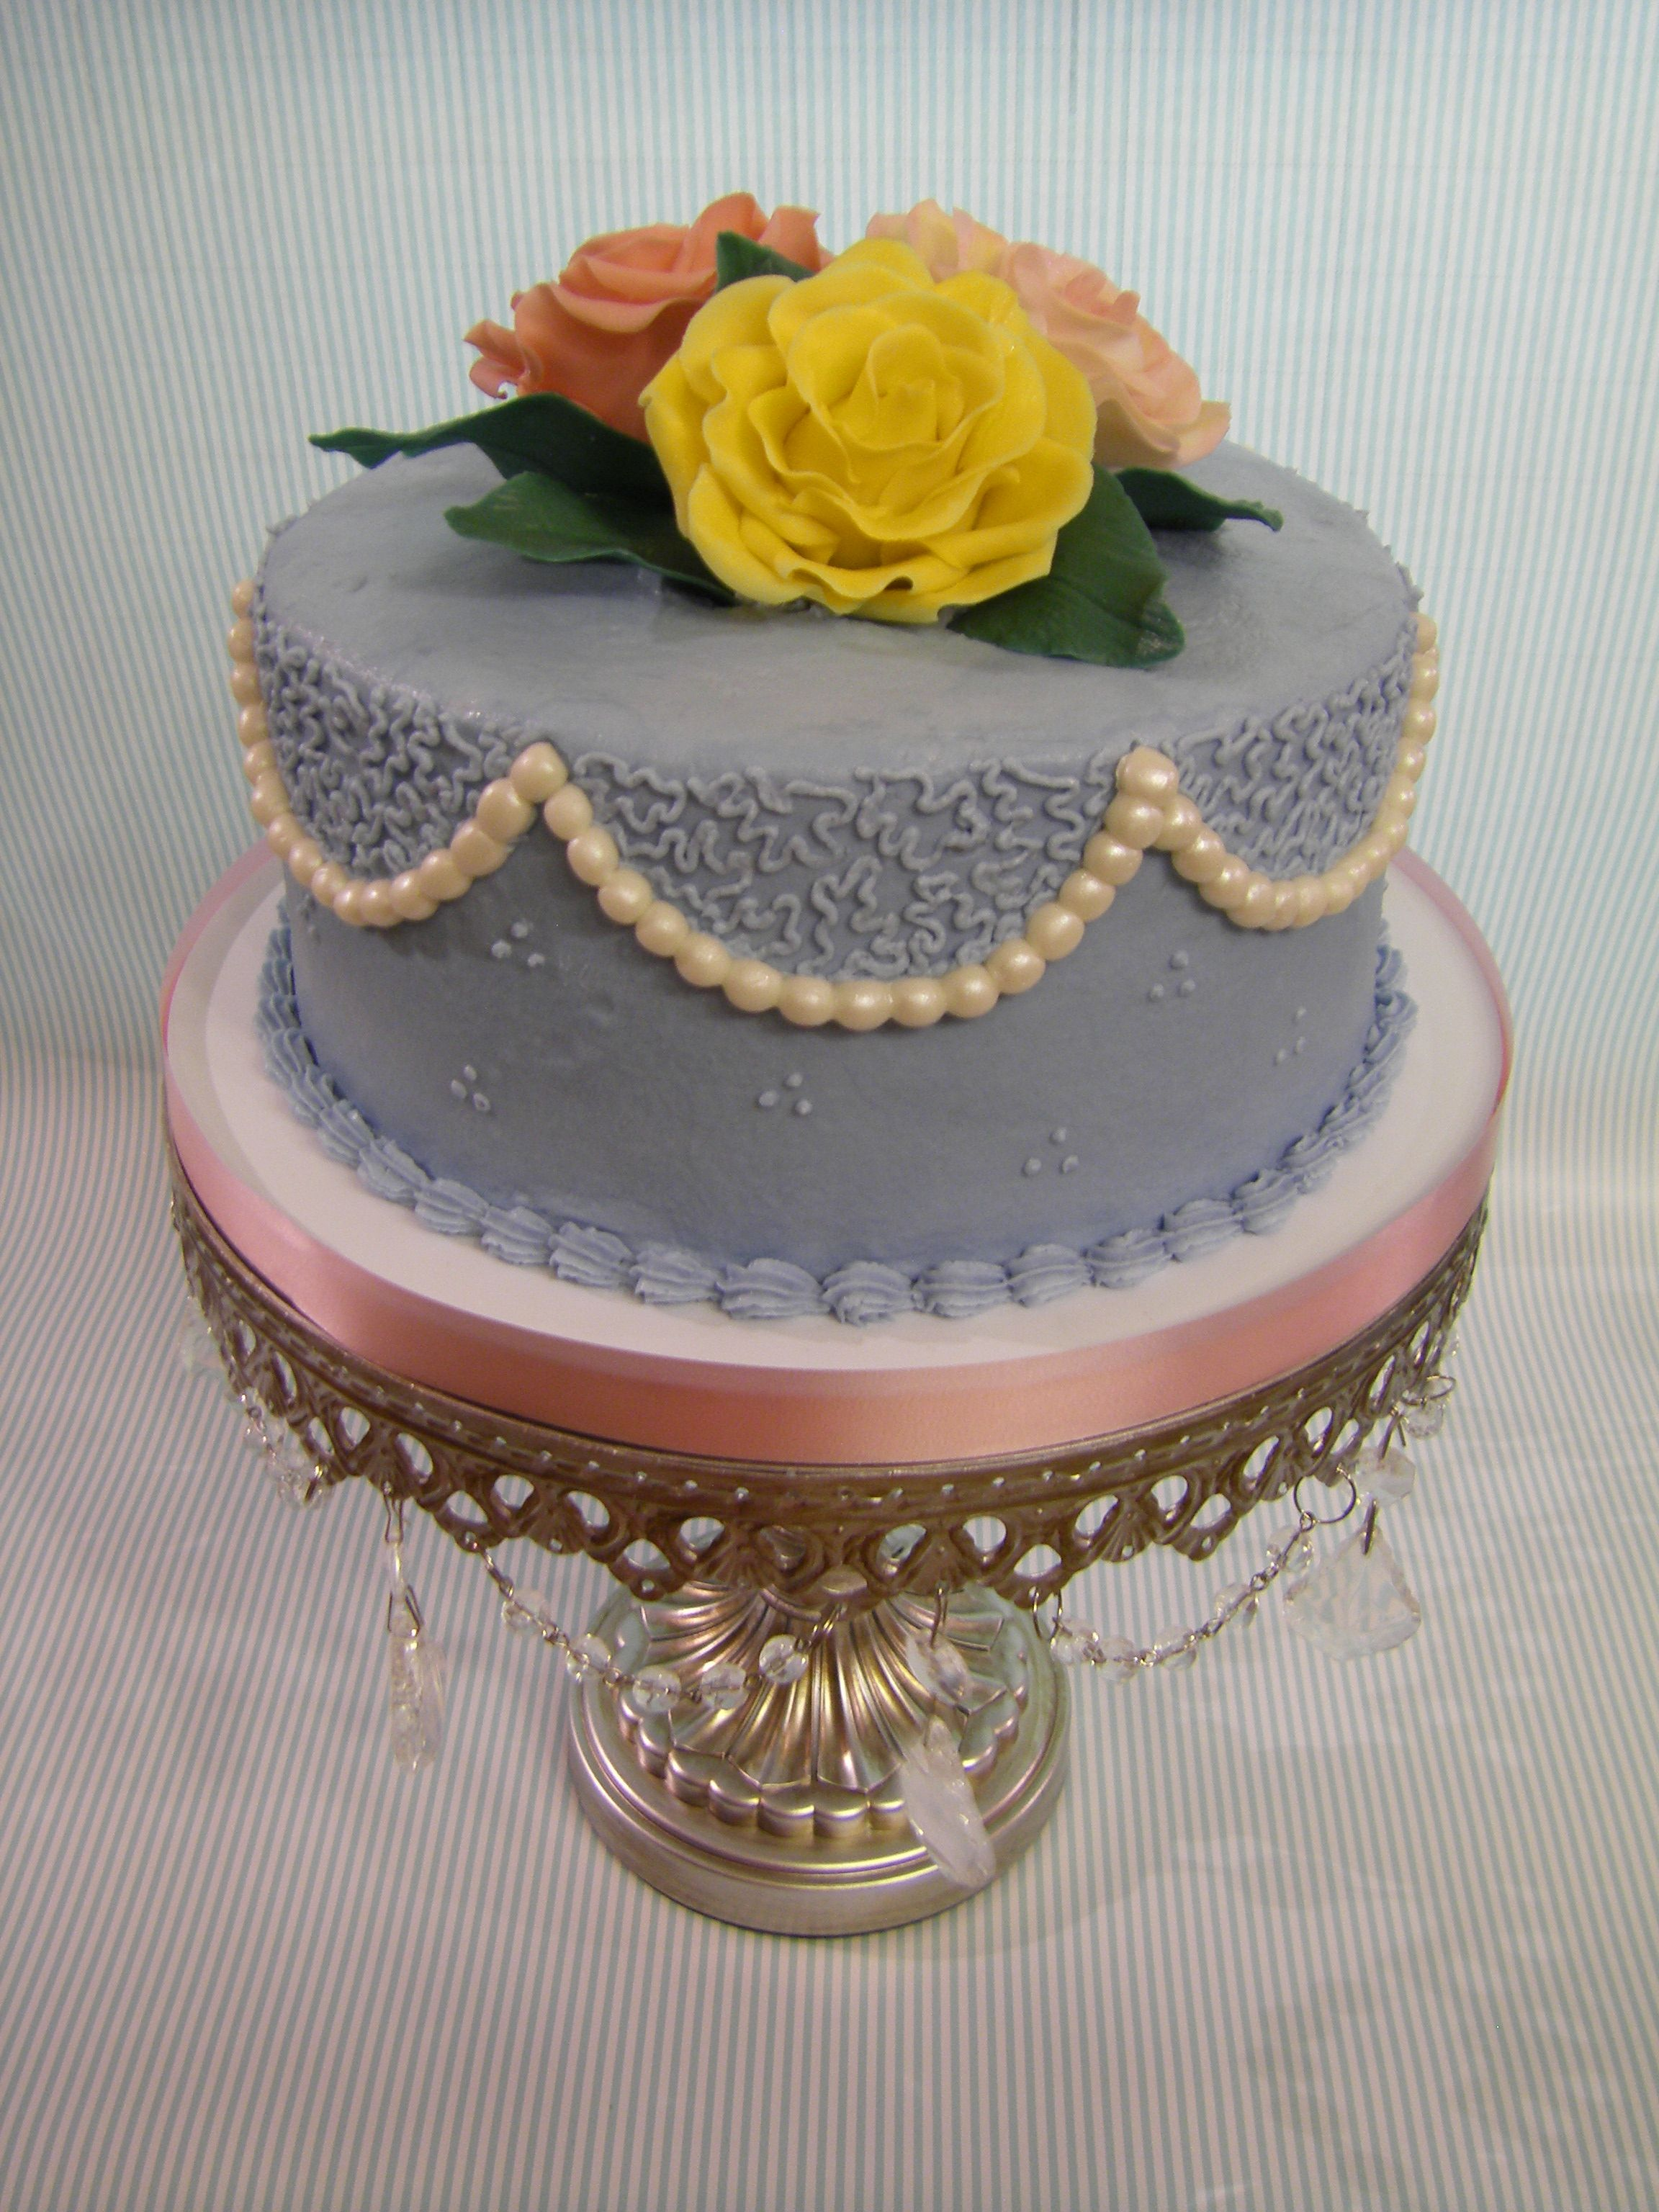 19+ Birthday cake for wife design ideas in 2021